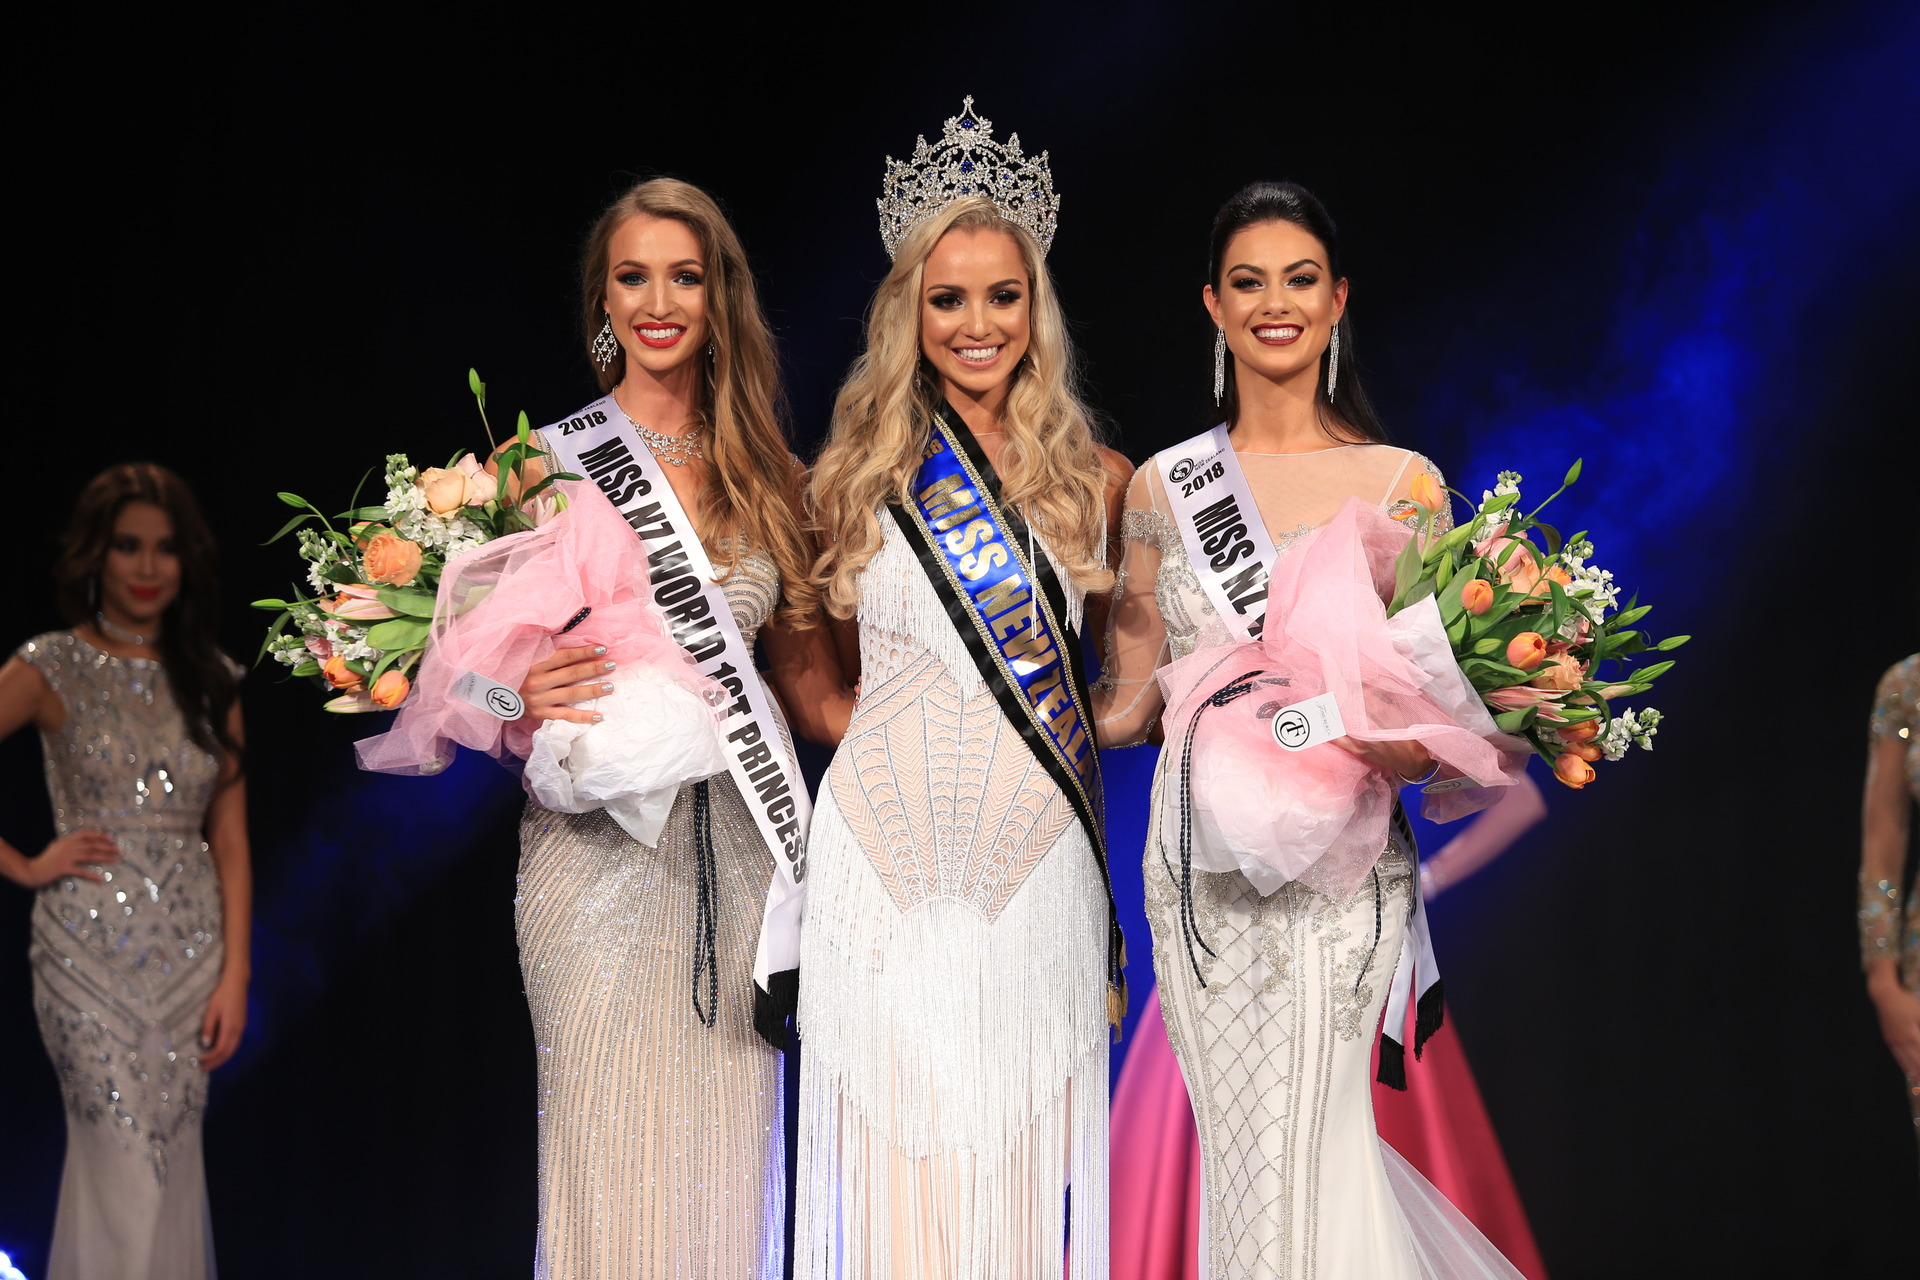 Beauty pageants in a post #MeToo era: Empowering or tone